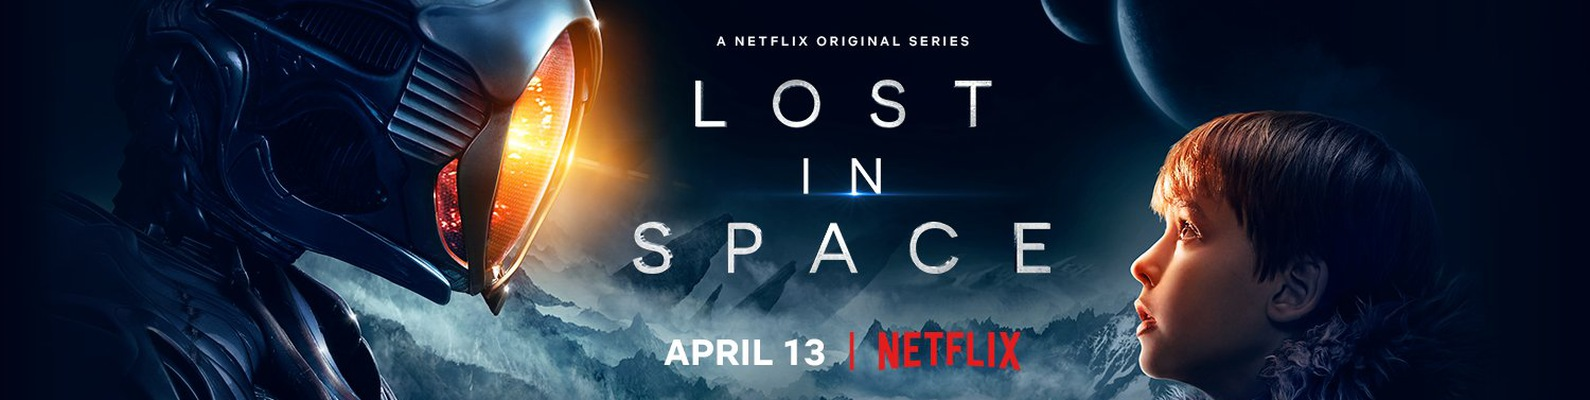 Lost in space 2018